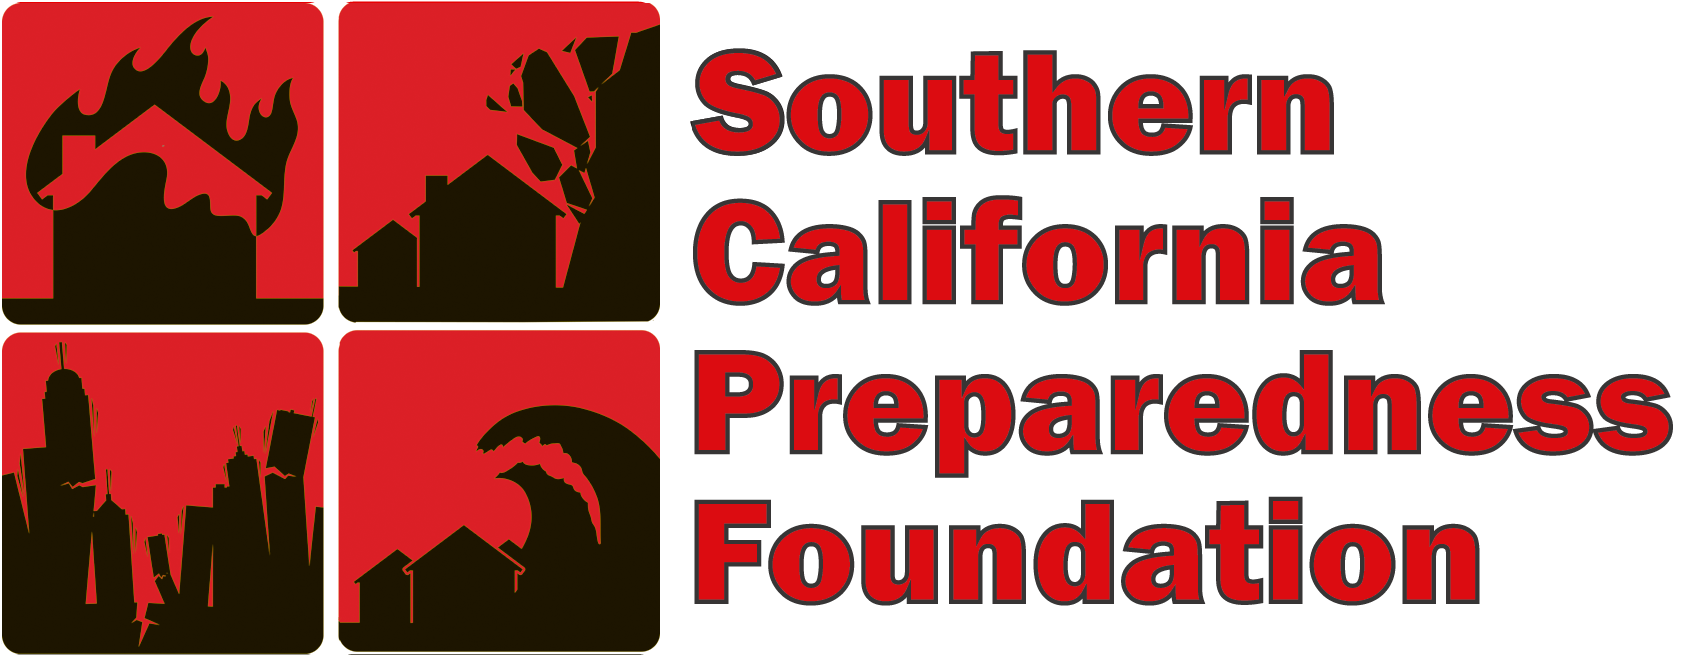 Southern California Preparedness Foundation